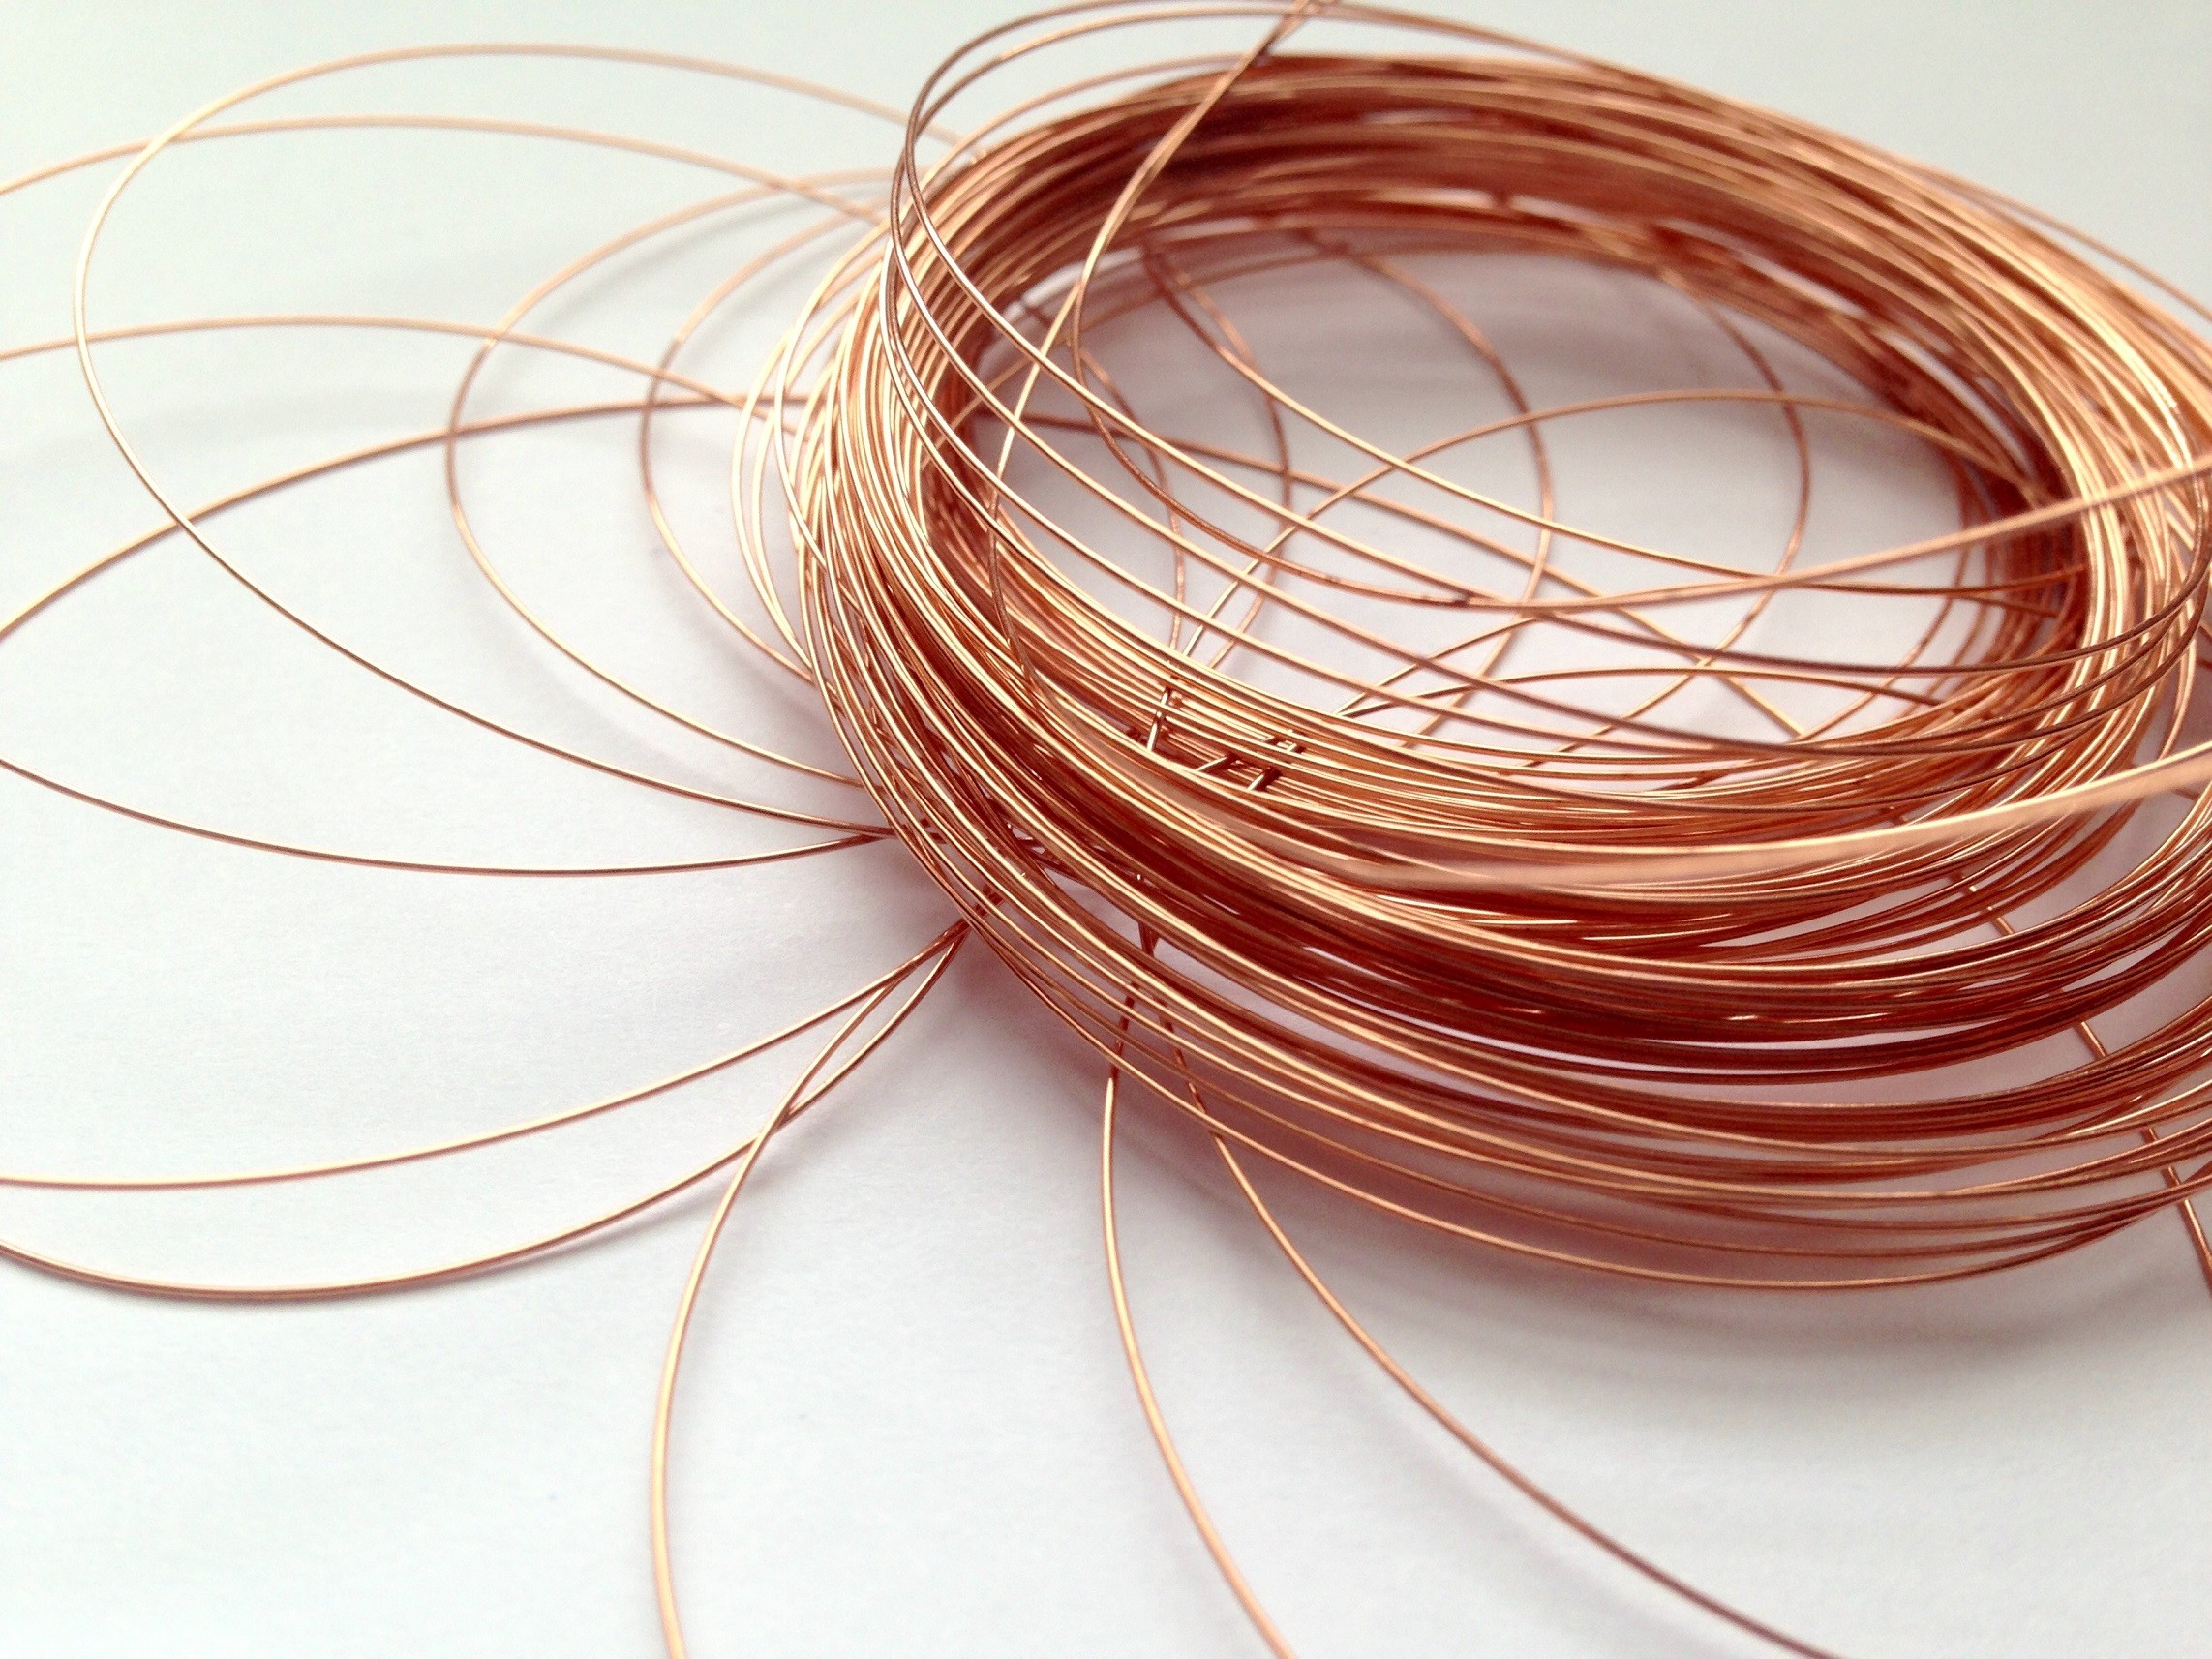 Copper wire coil on white background